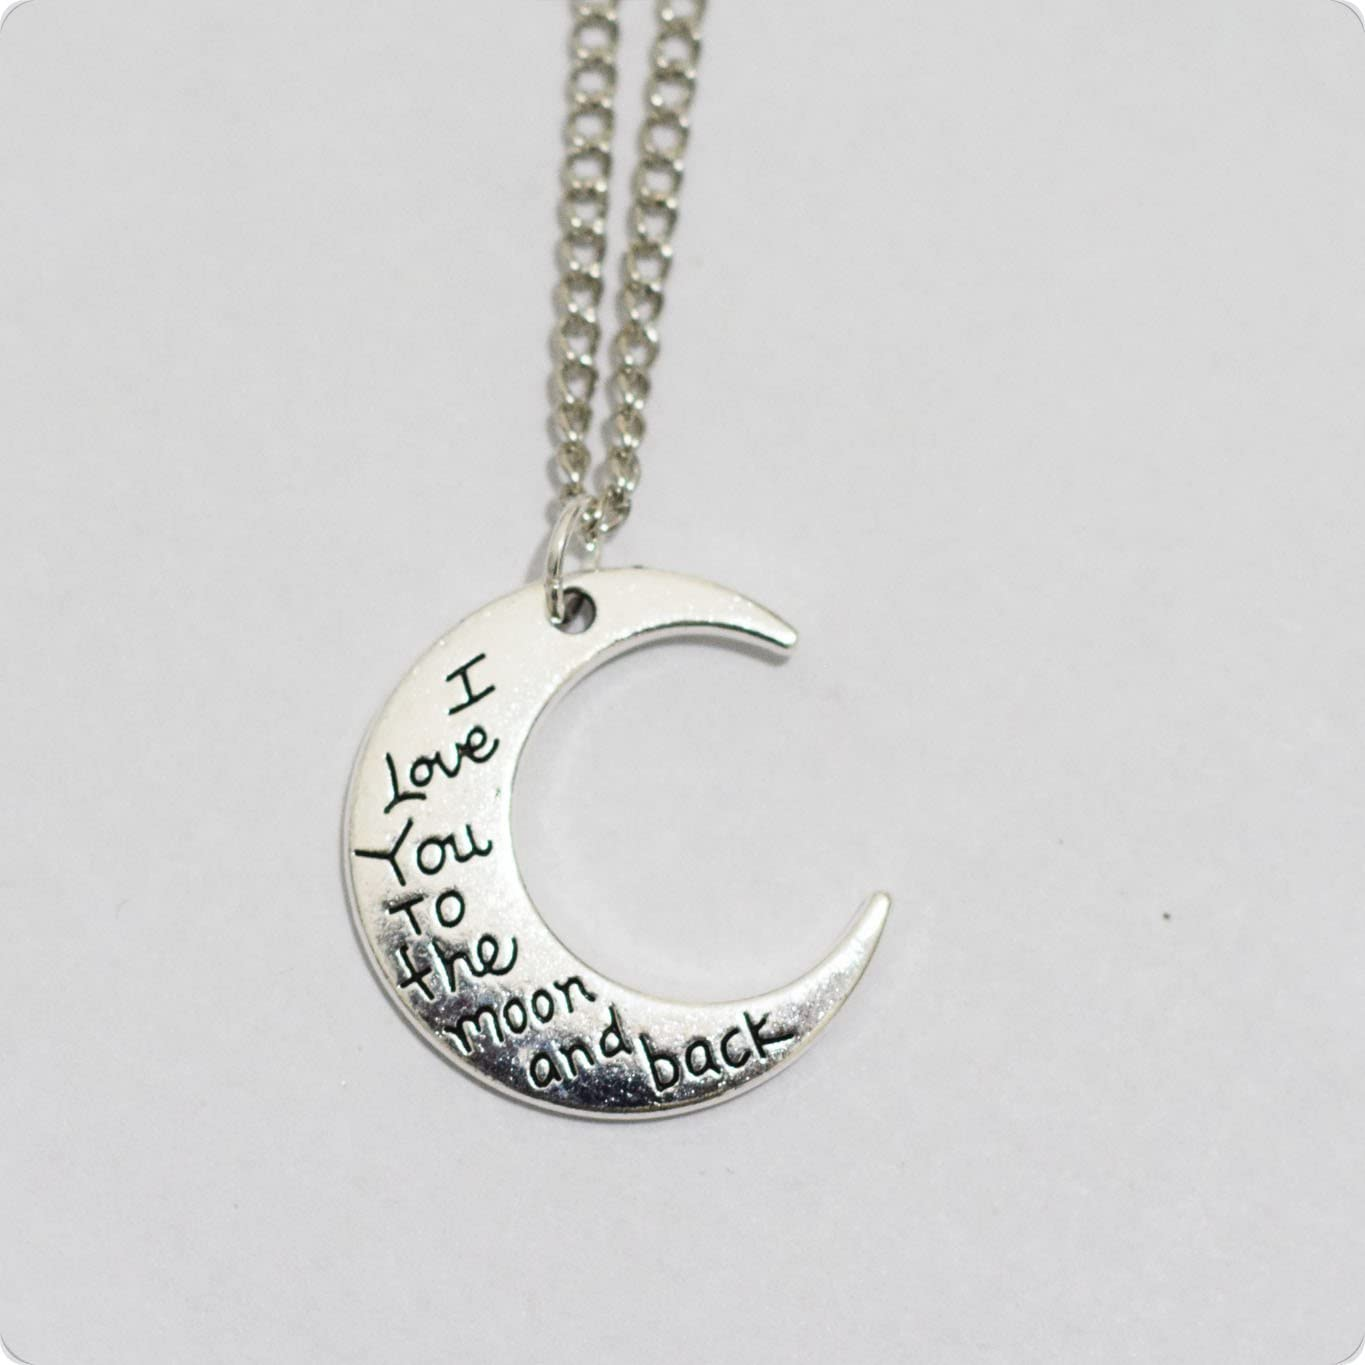 Moon Necklace- I Love You to the Moon and Back, Daughter Gift, Birthday Gift, Anniversary Gift, Wedding Surprise, Engagement Surprise Gift